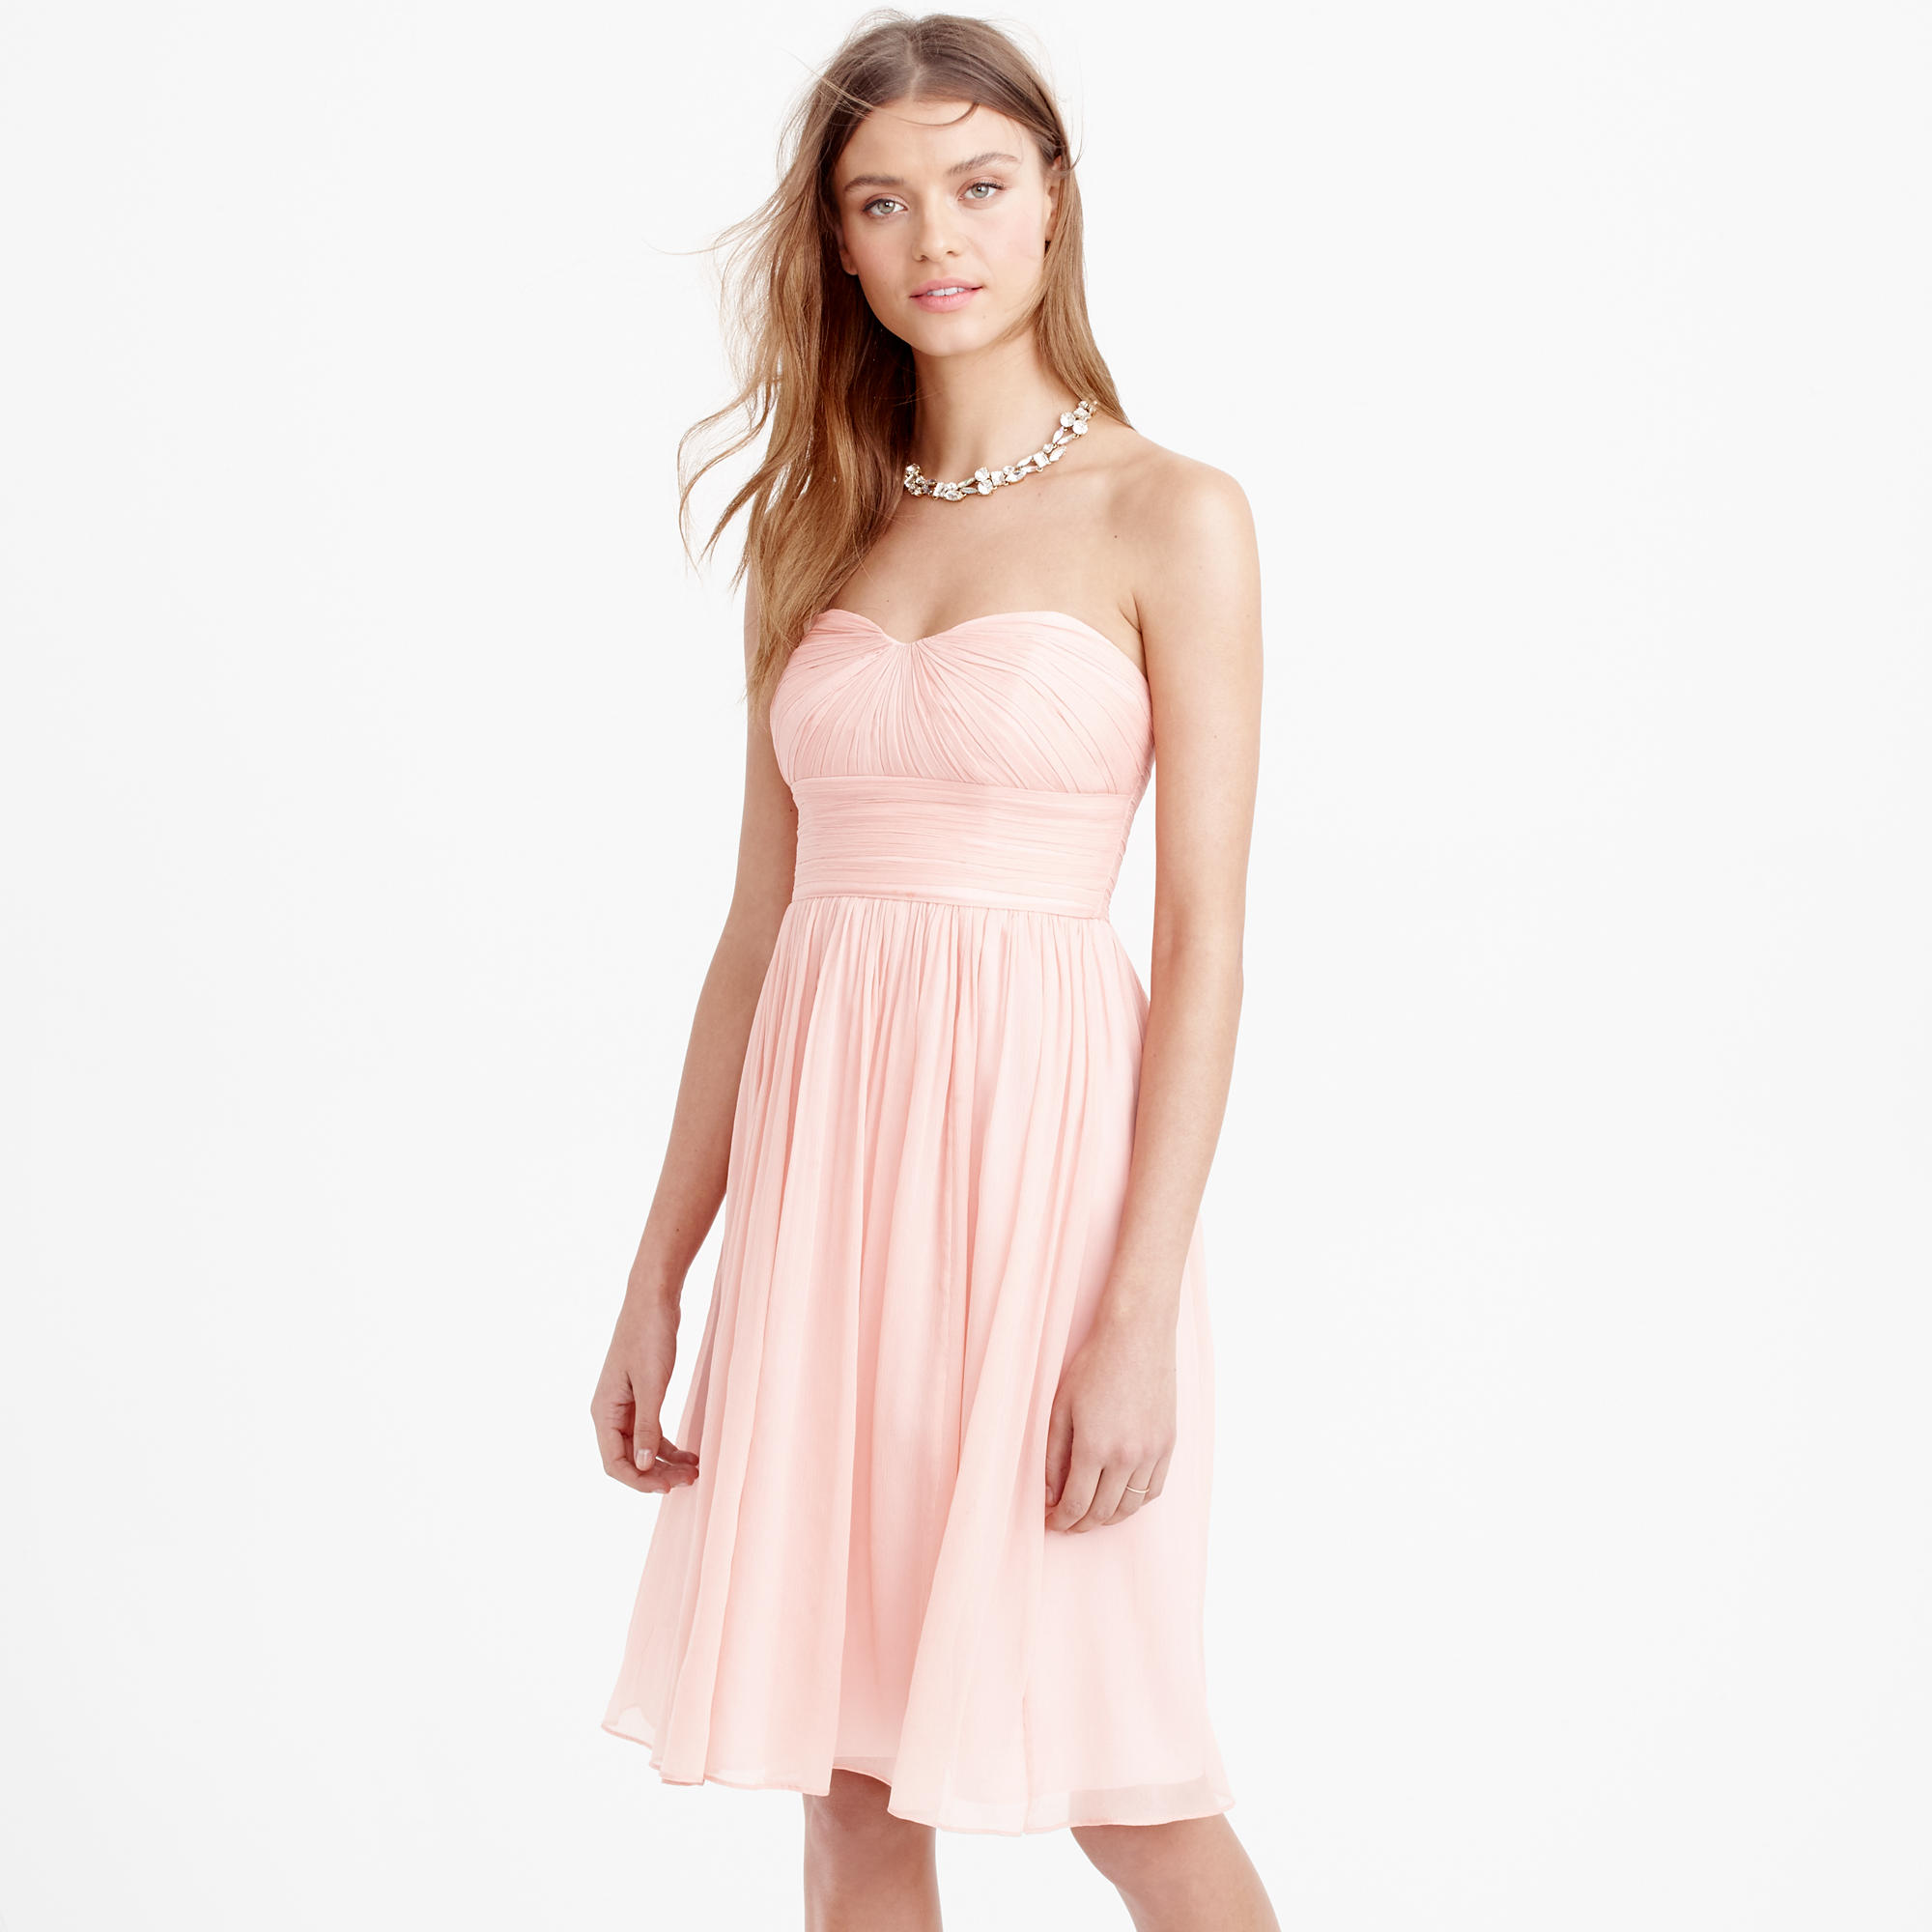 Dress strapless dress yp for What to wear under strapless wedding dress